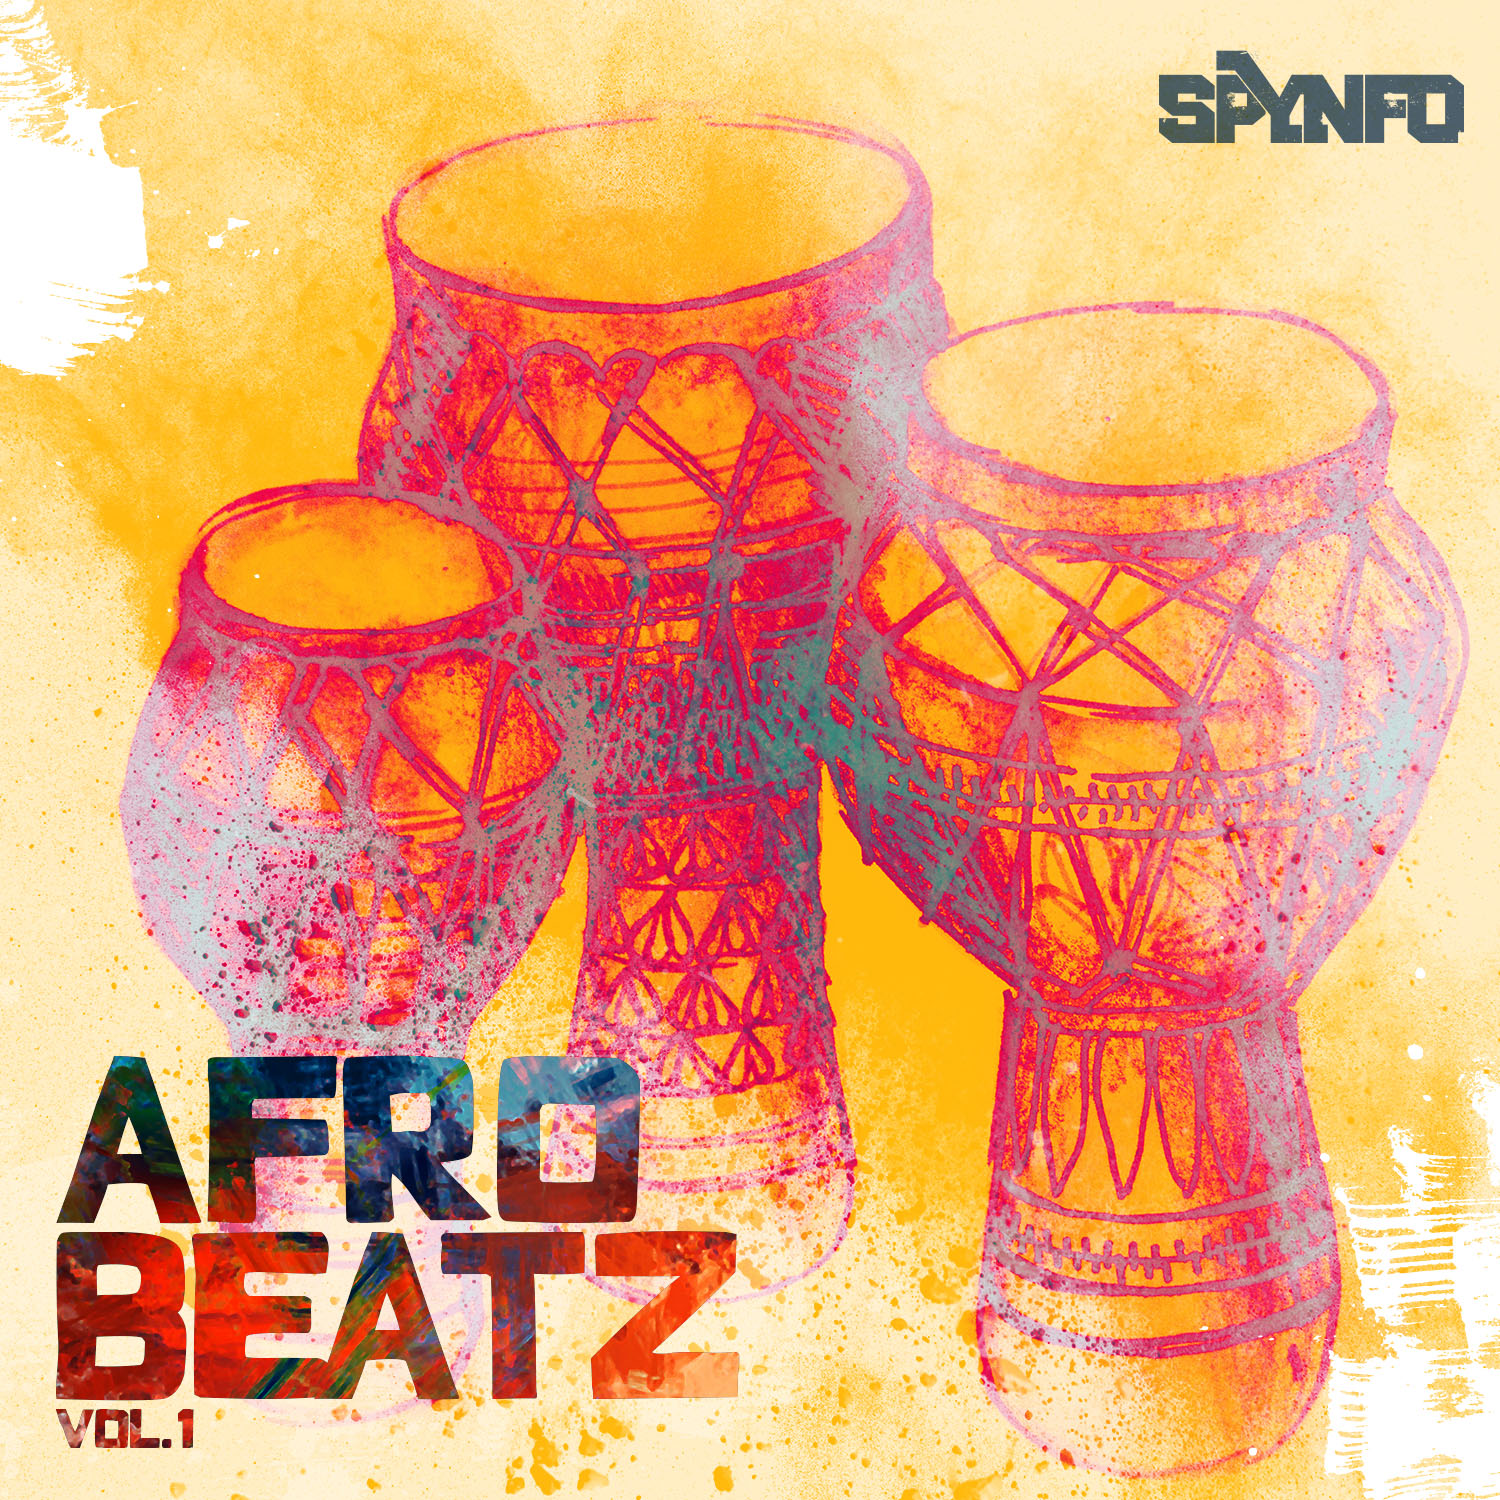 AFROBEATS VOL. 1